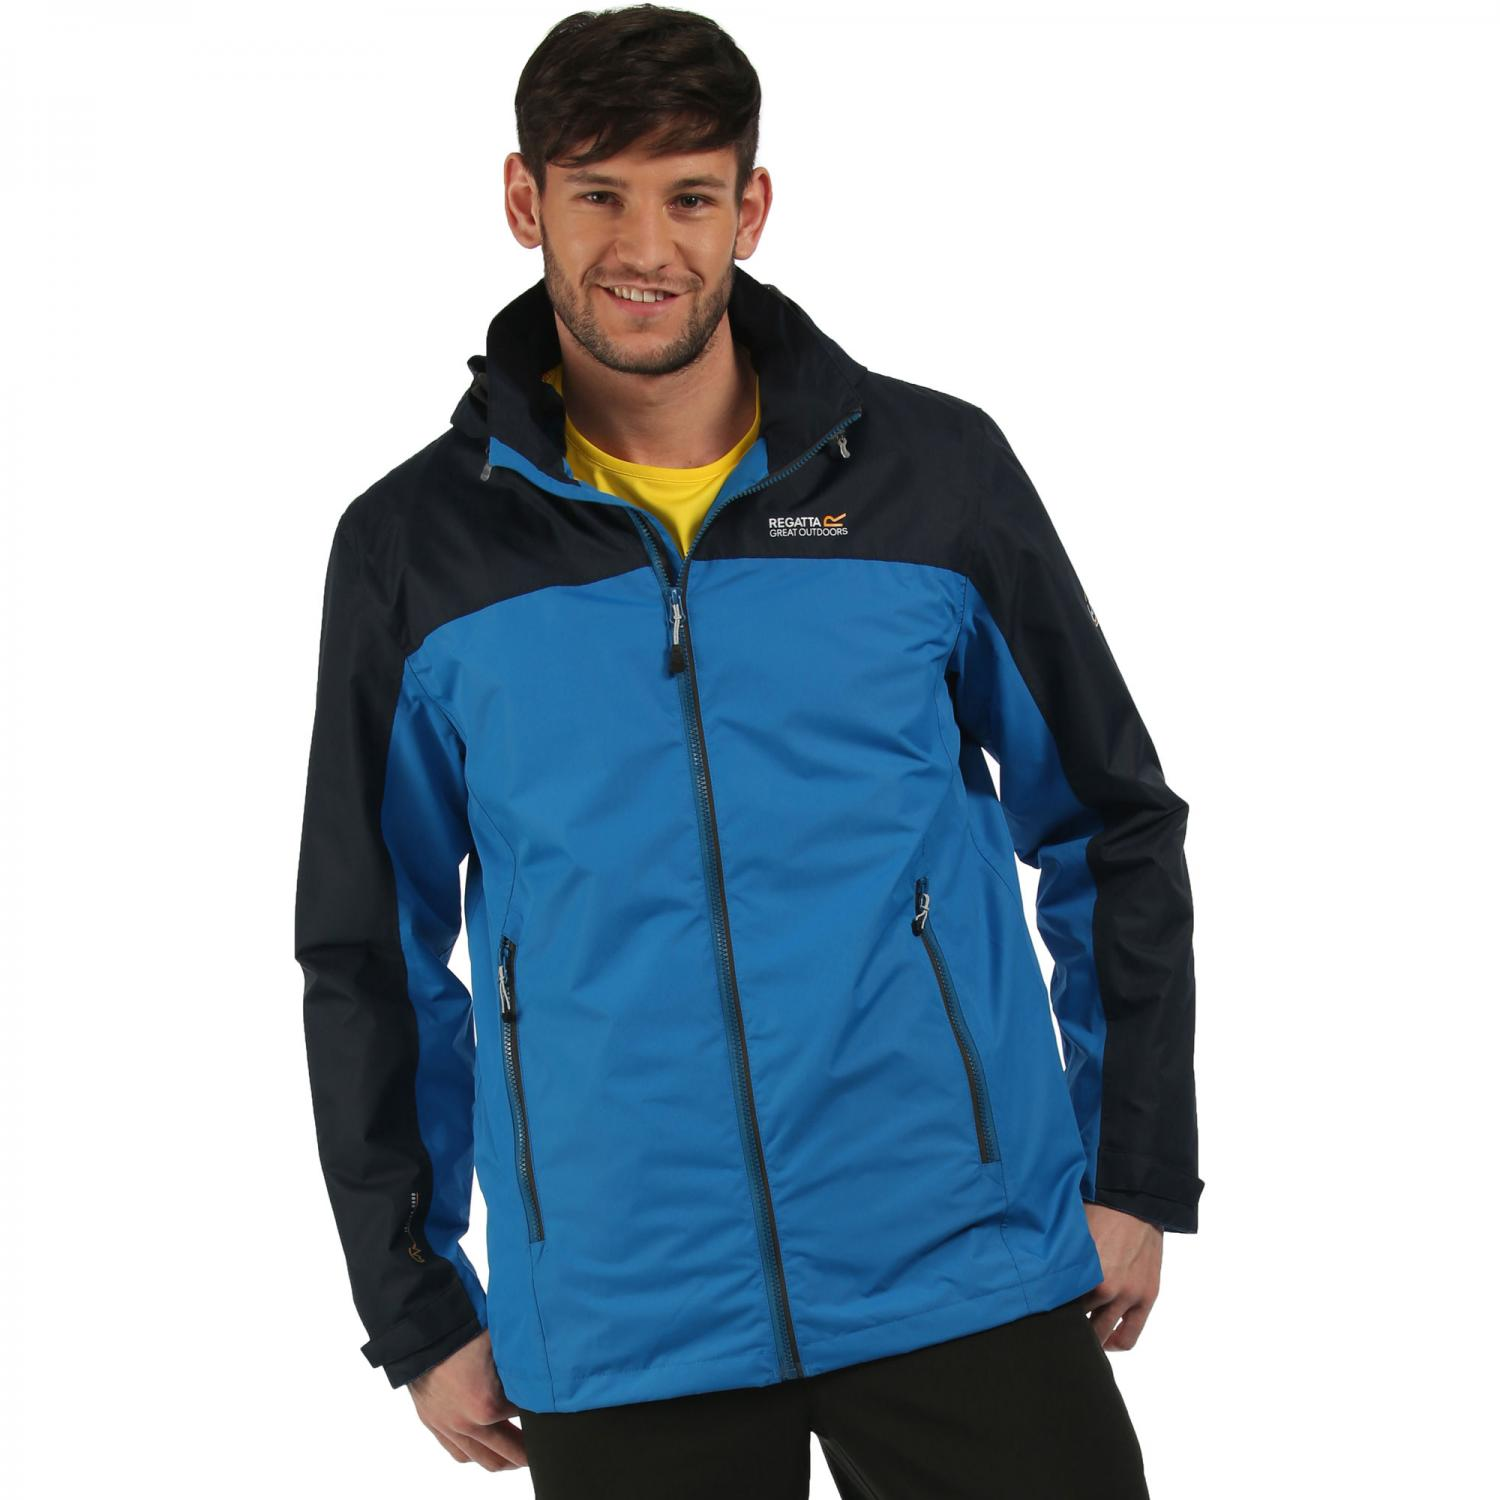 Backmoor 3 in 1 Jacket Imperial Blue Navy